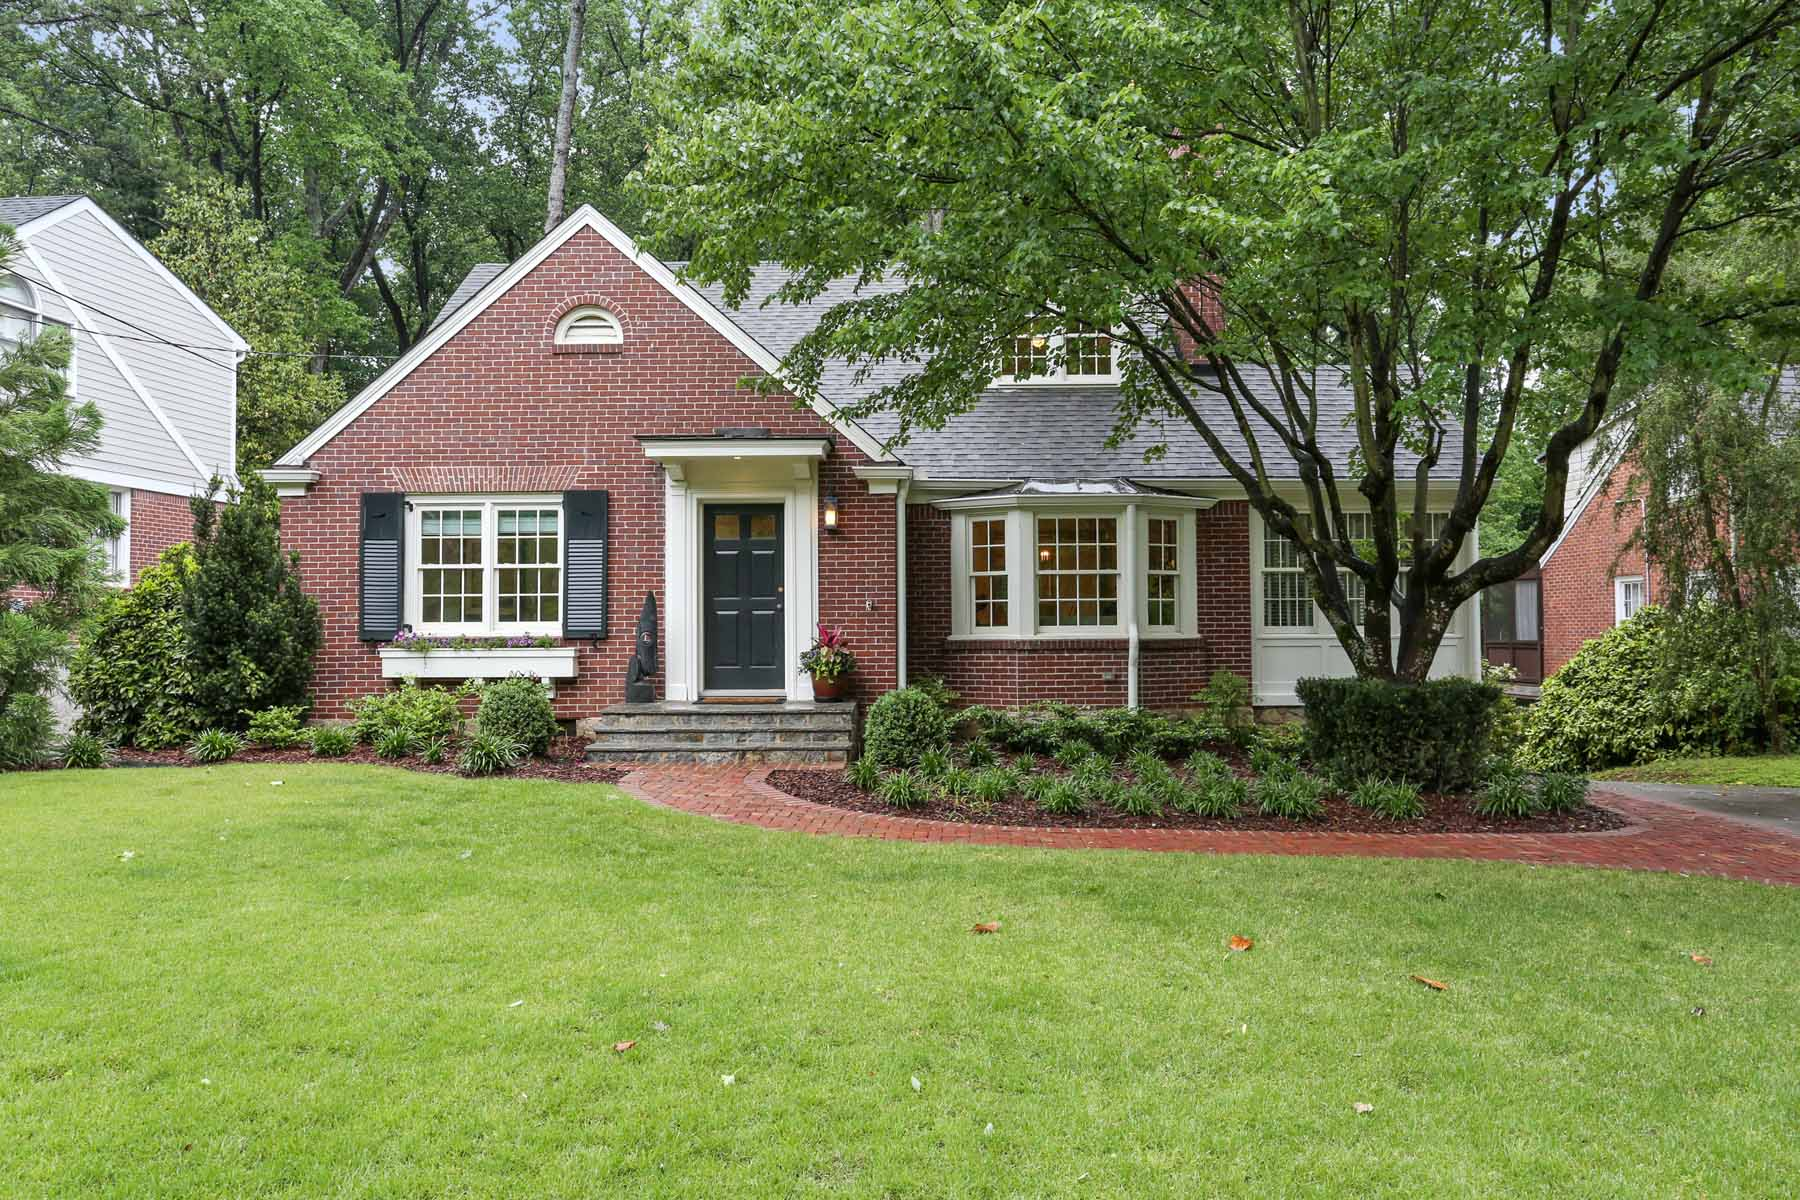 Vivienda unifamiliar por un Venta en Custom Morningside Renovation 1385 Greenland Dr NE Atlanta, Georgia, 30306 Estados Unidos